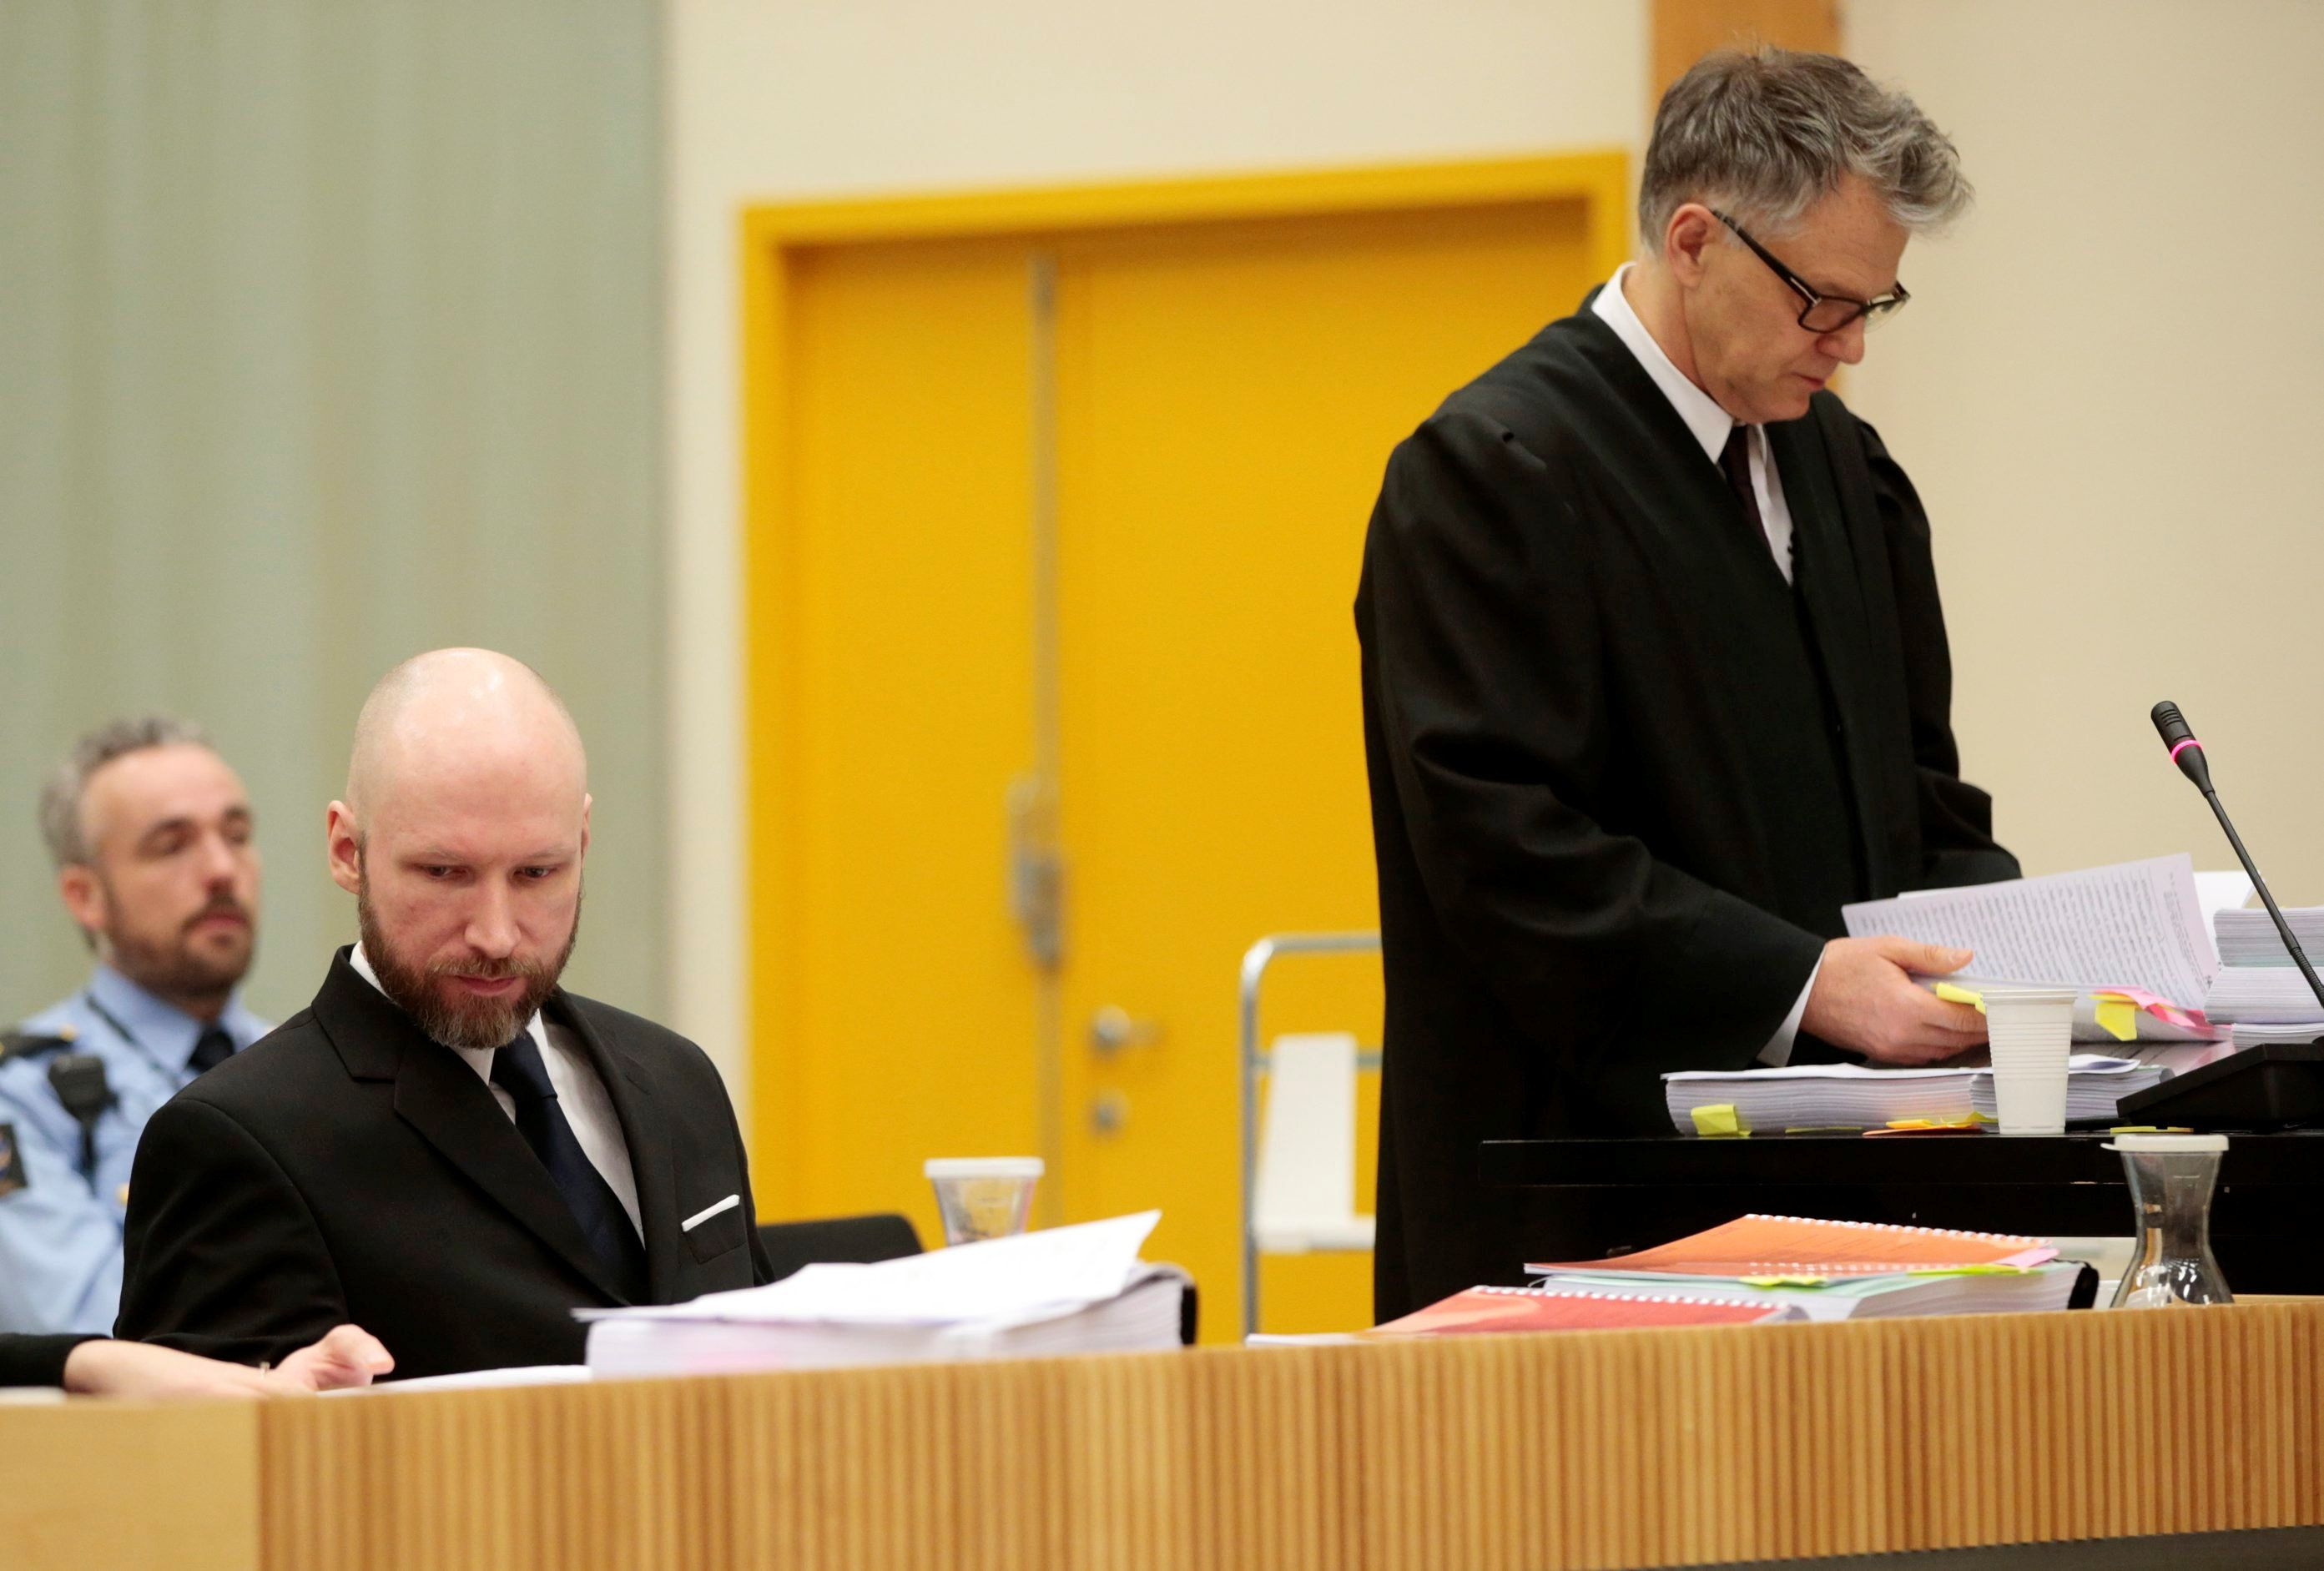 Anders Behring Breivik and his lawyer Oystein Storrvik (R) are seen on the third day of the appeal case in Borgarting Court of Appeal at Telemark prison in Skien, Norway January 12, 2017. NTB Scanpix/Lise Aaserud/via REUTERS      ATTENTION EDITORS - THIS IMAGE WAS PROVIDED BY A THIRD PARTY. FOR EDITORIAL USE ONLY. NORWAY OUT. NO COMMERCIAL OR EDITORIAL SALES IN NORWAY.